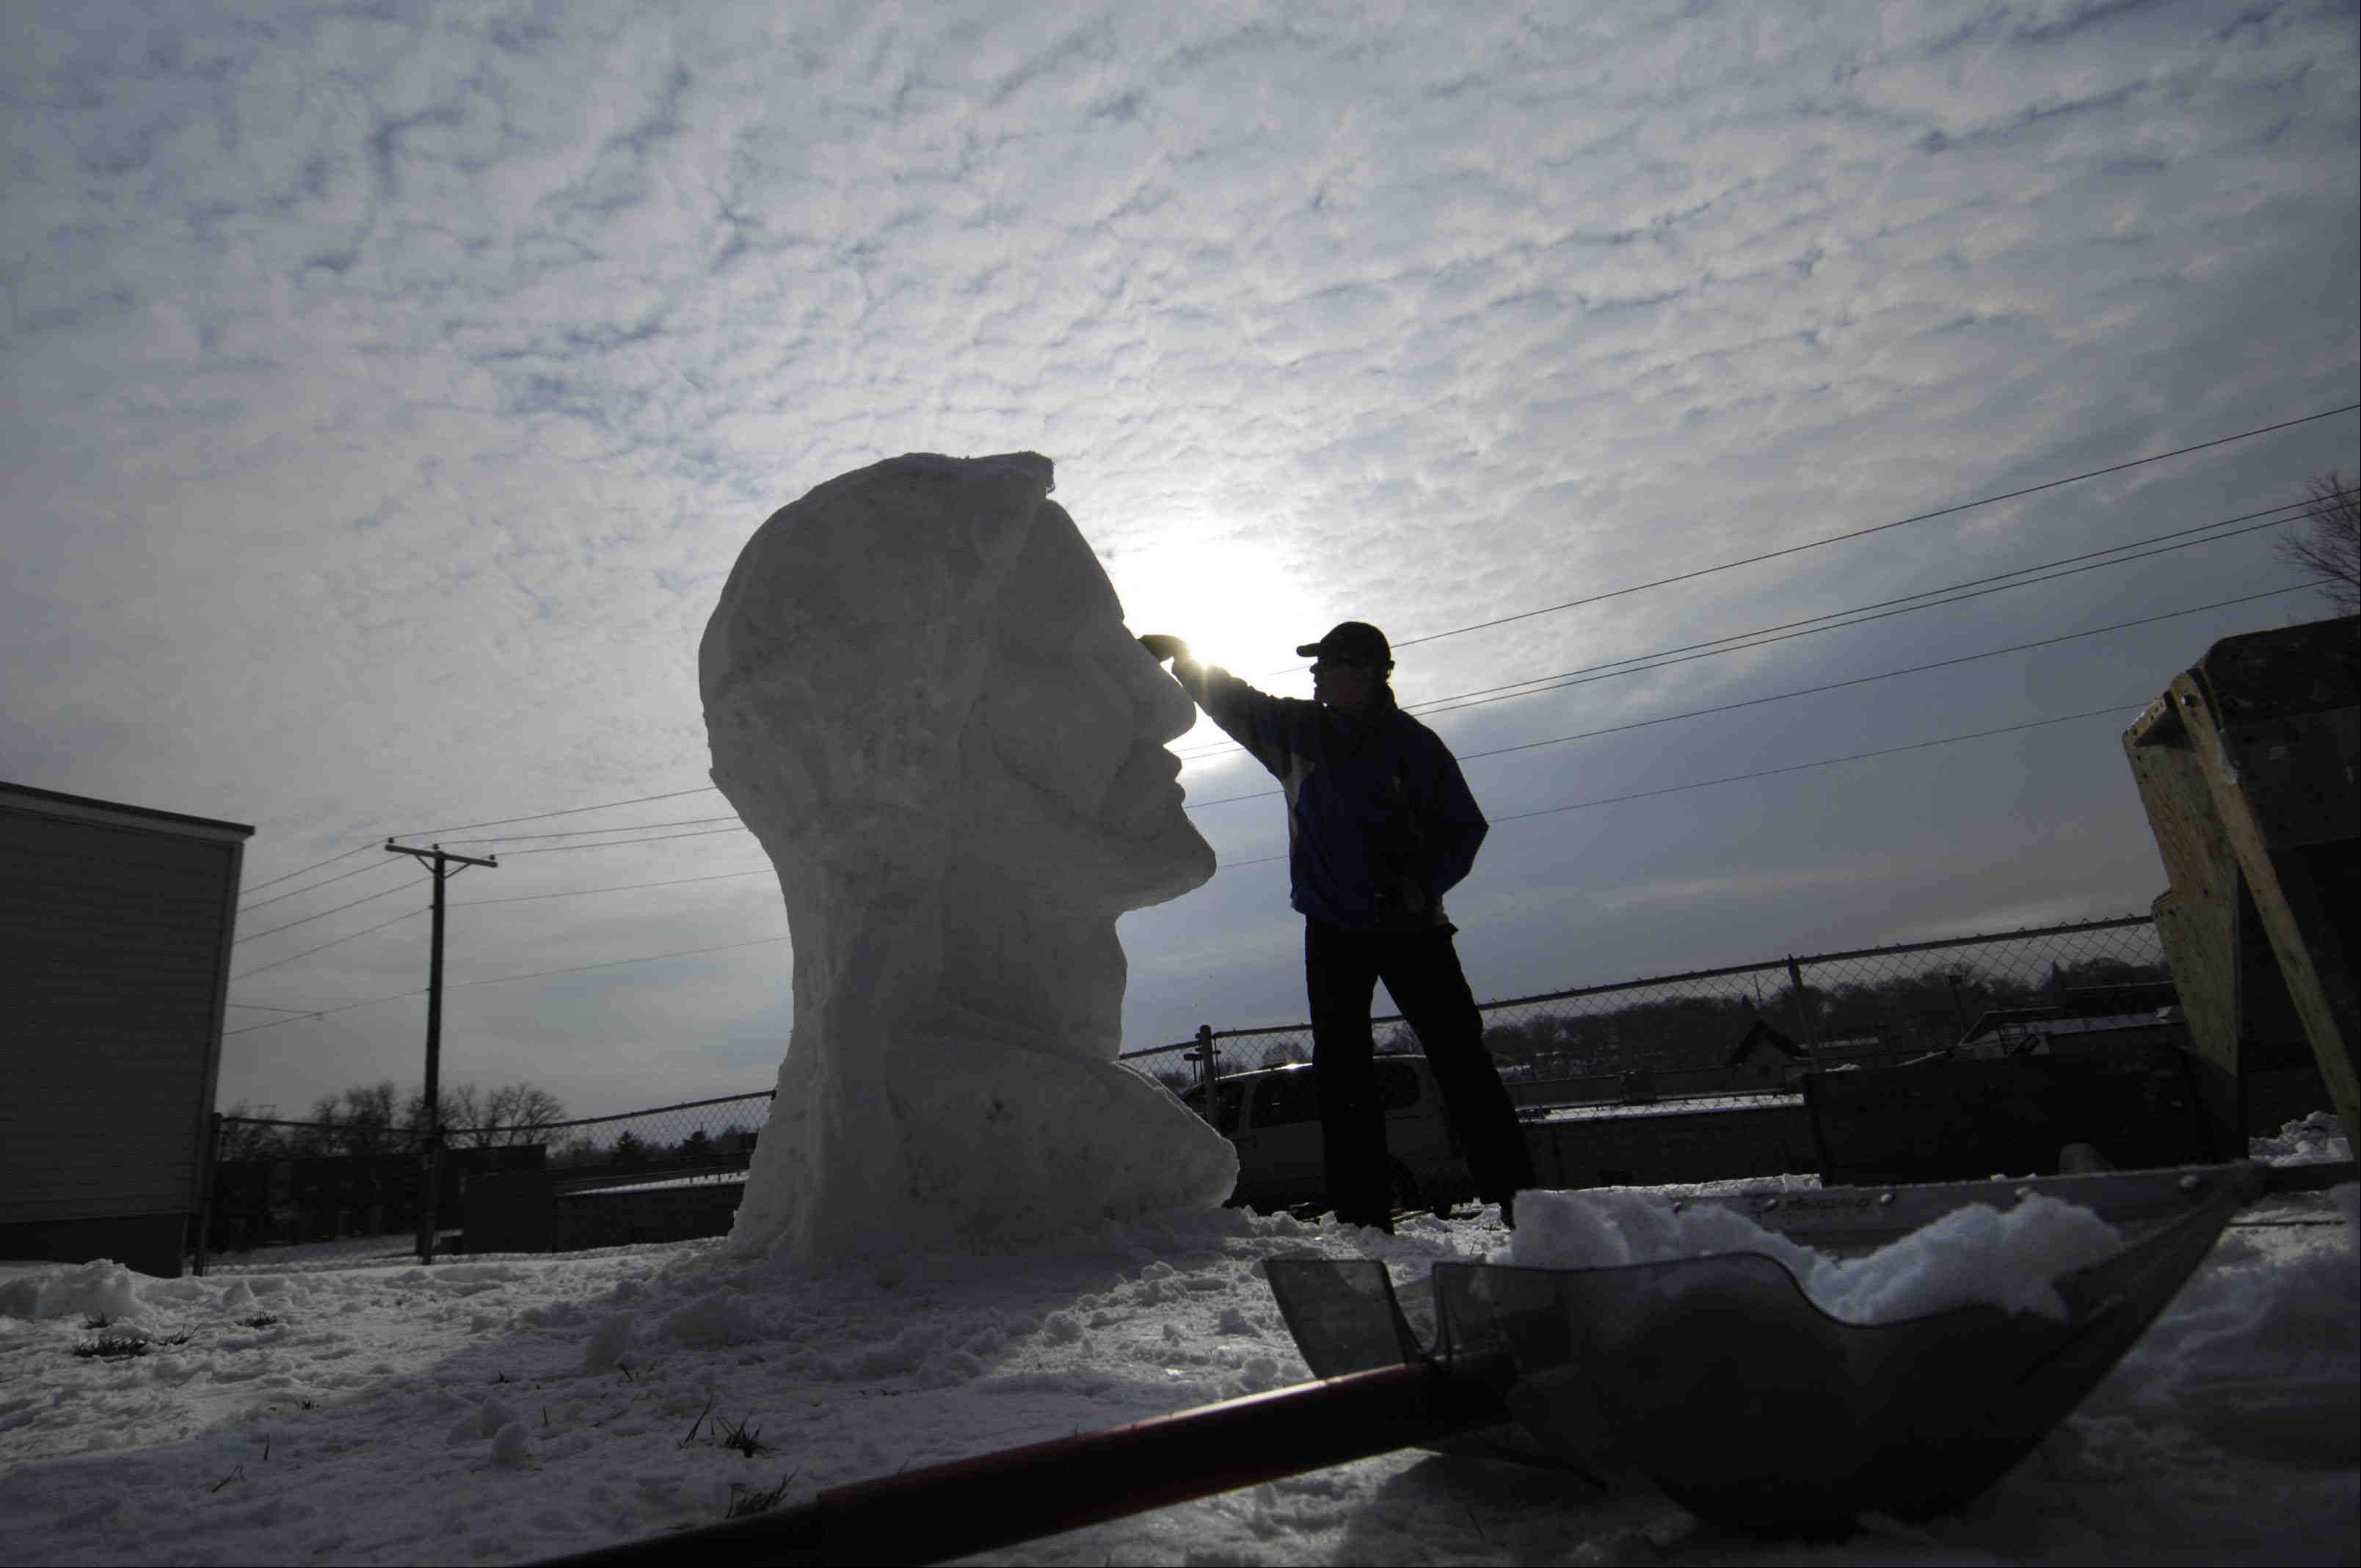 Moving picture: Elgin sculptor carves snow Jesus